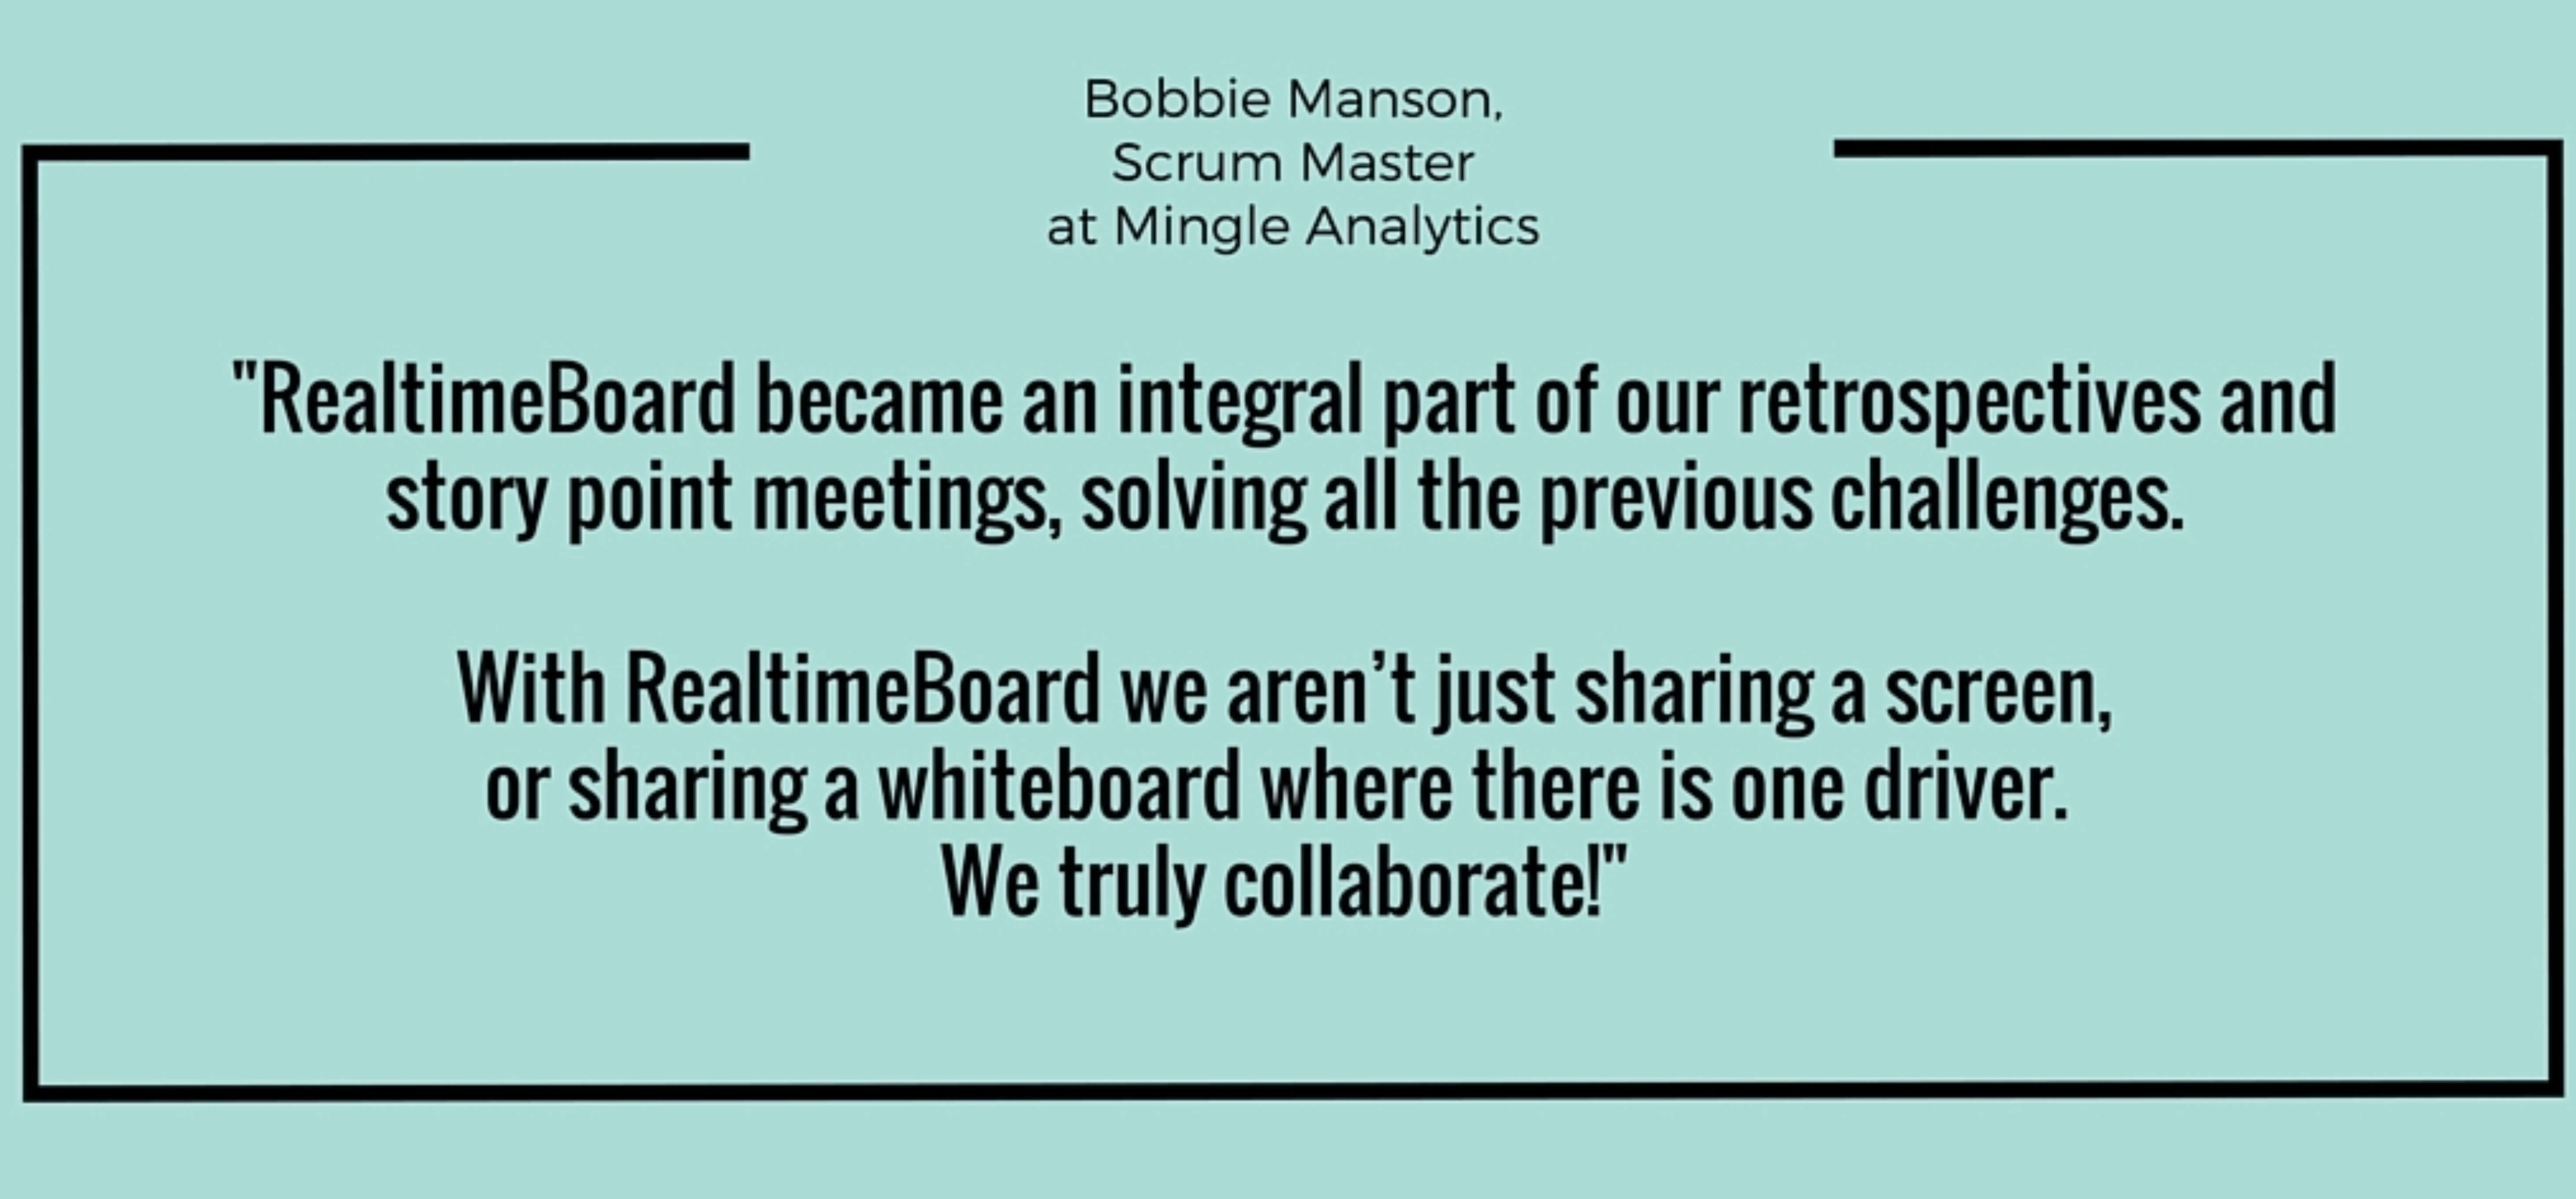 Bobbie Manson from Mingle Analytics describes how her remote agile team could solve collaboration problems.